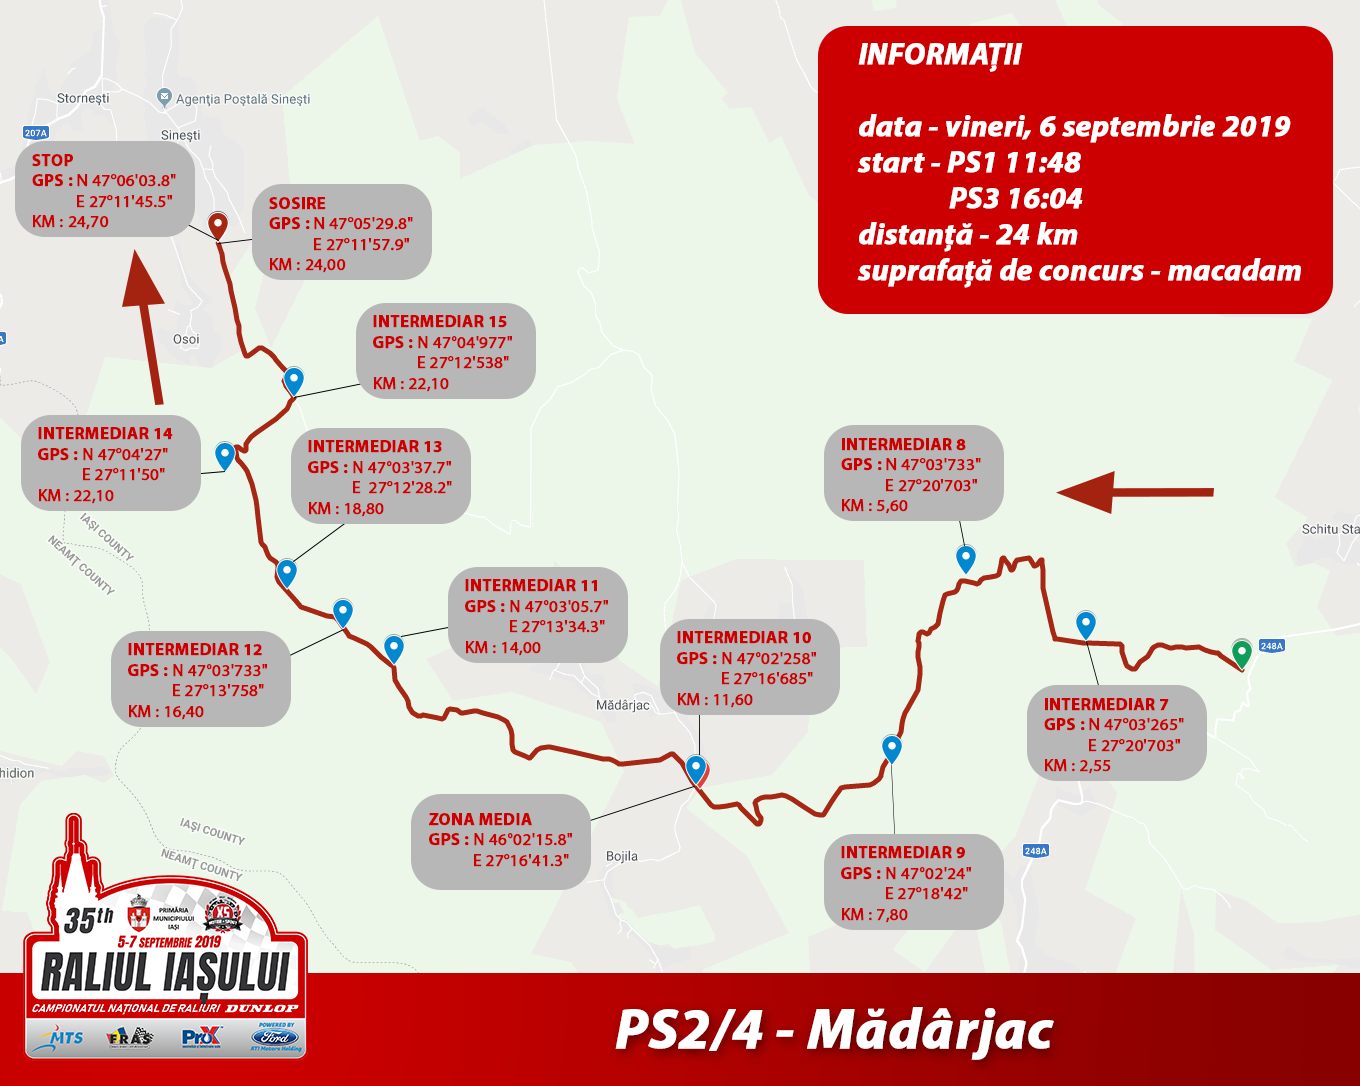 PS 2-4 Madarjac